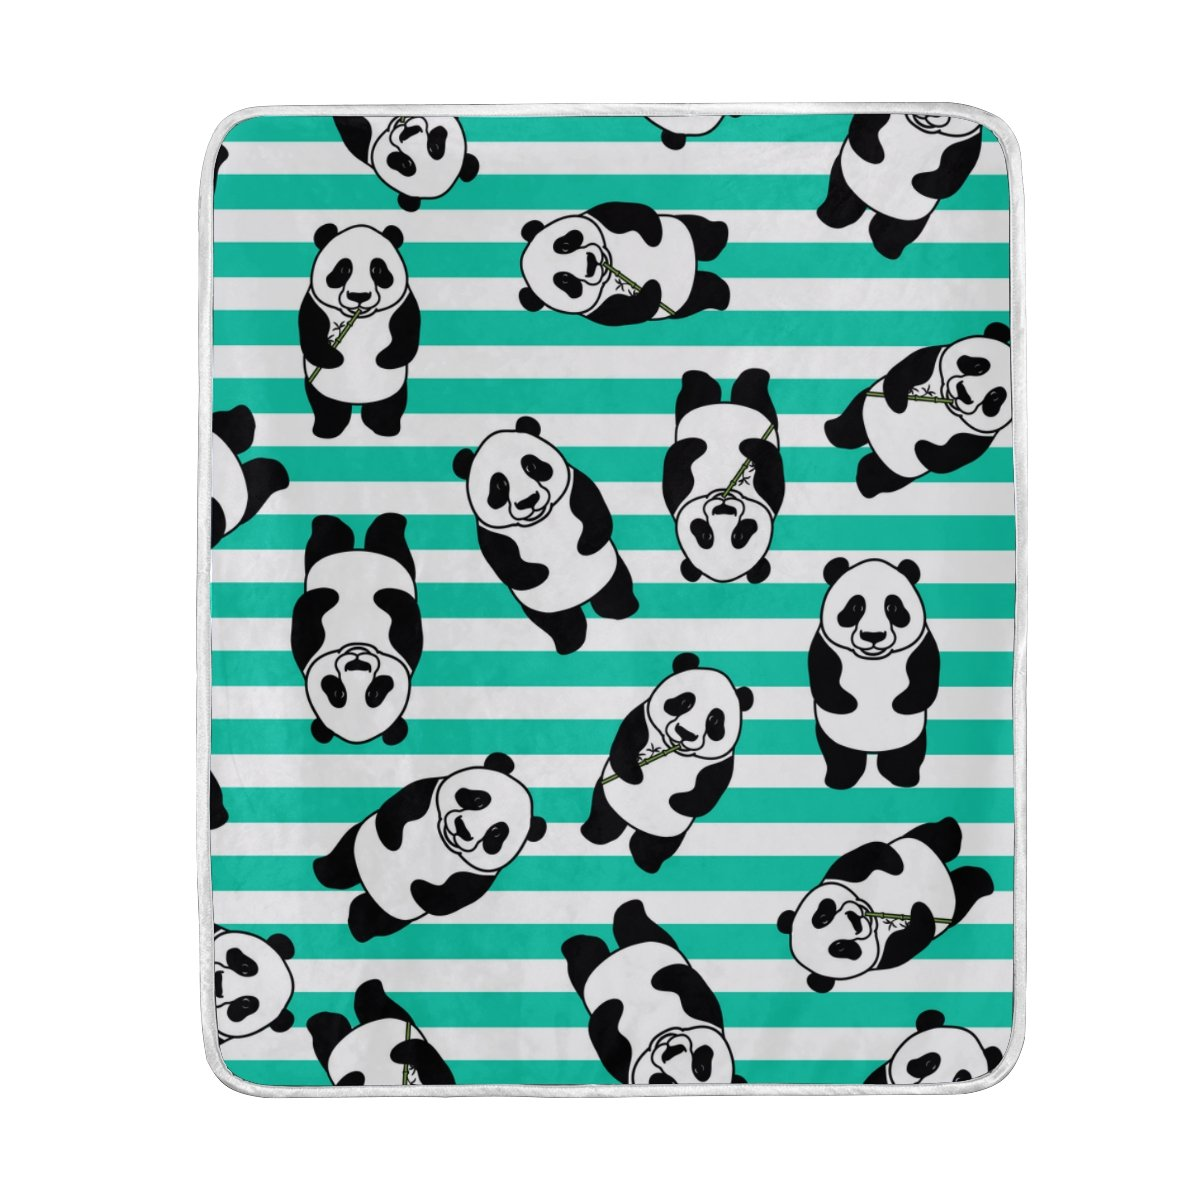 My Little Nest Warm Throw Blanket Striped Panda Lightweight MicrofiberSoft Blanket Everyday Use for Bed Couch Sofa 50'' x 60''